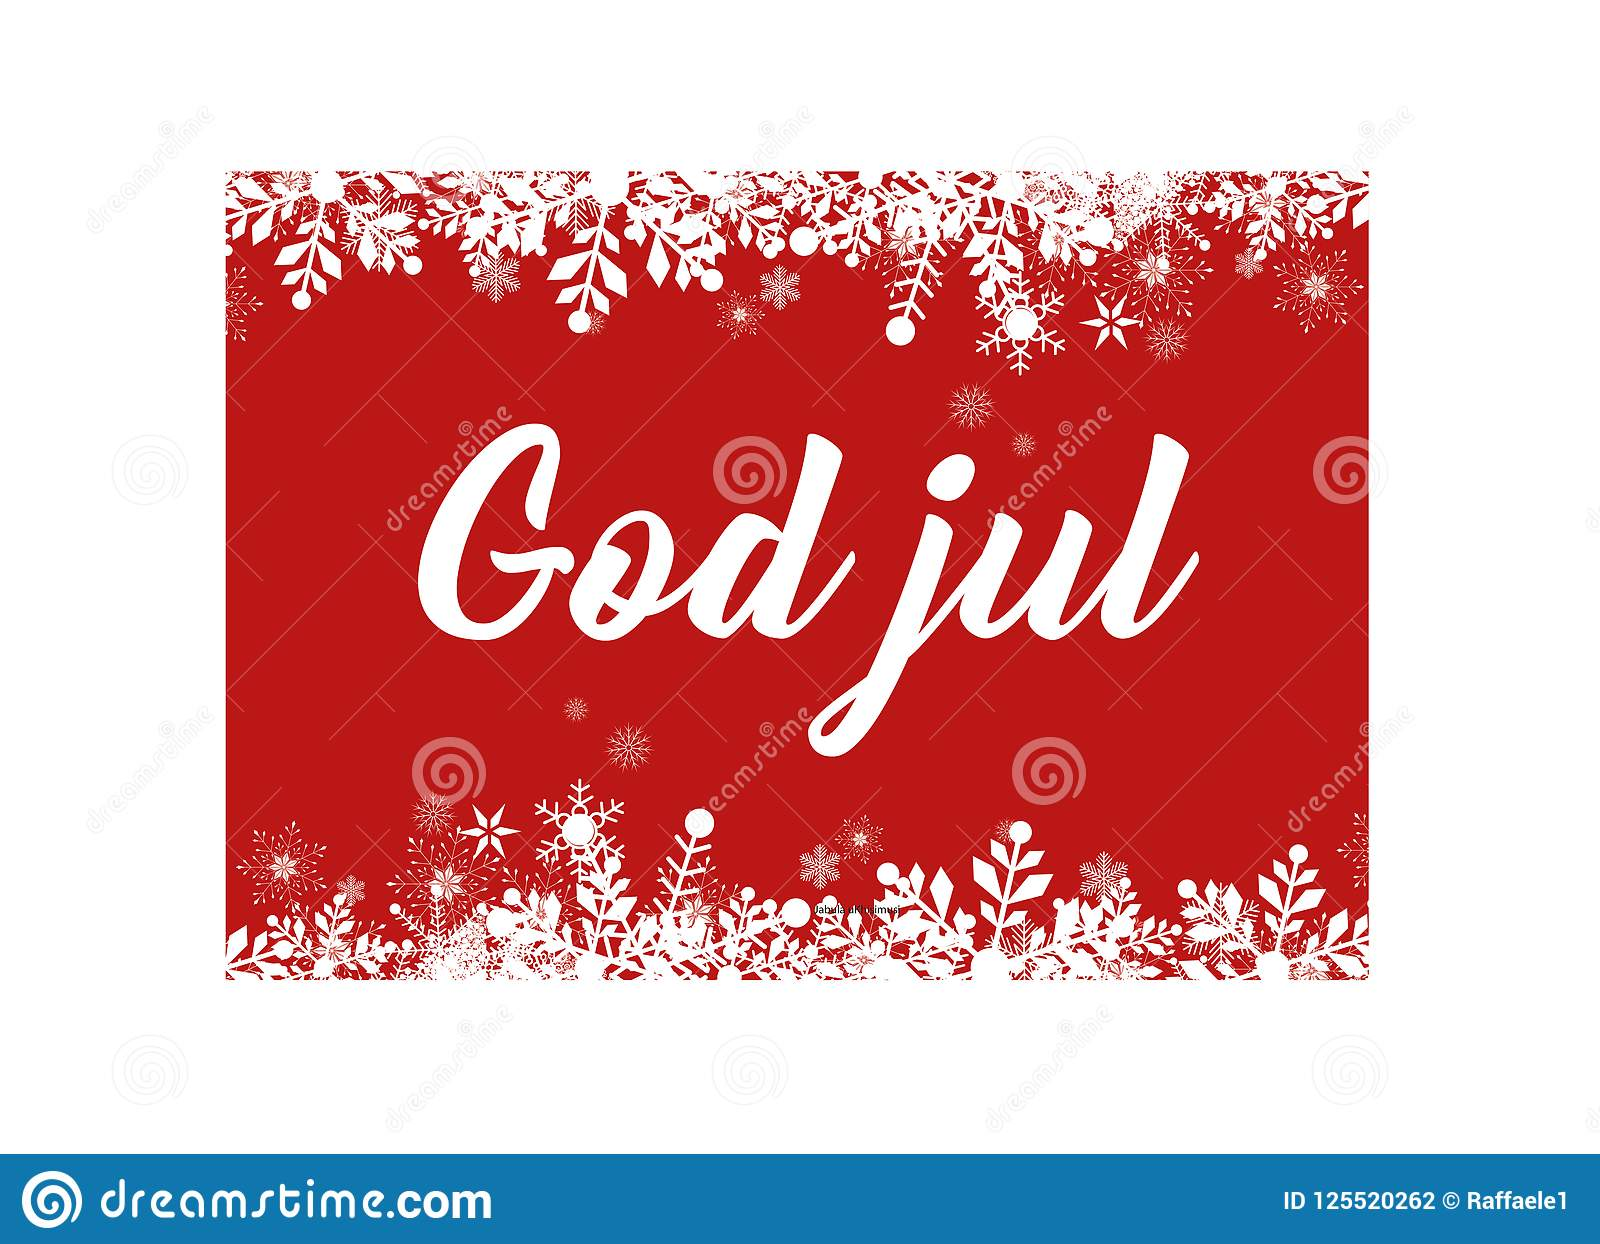 Merry Christmas In Norwegian.Red Merry Christmas In Danish And Swedish Norwegian Greeting